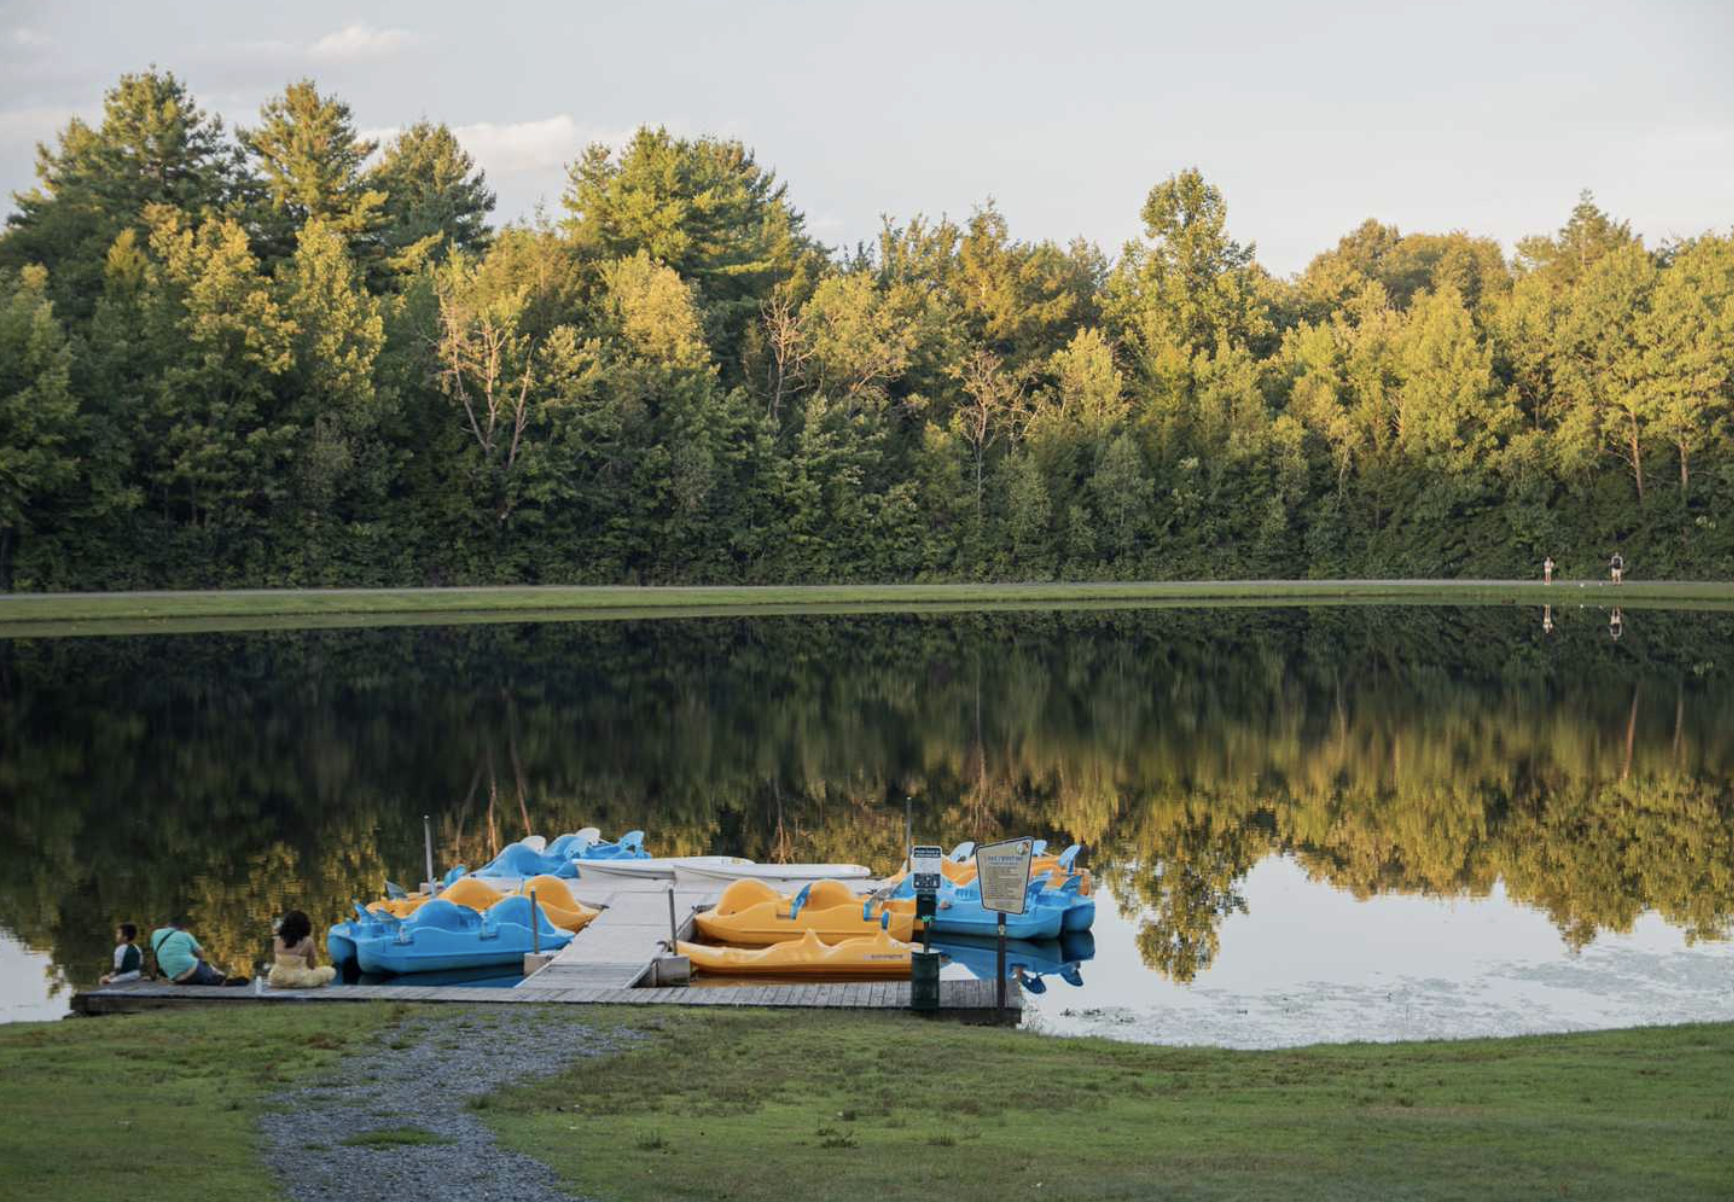 Paddle boards in lake during golden hour at campground